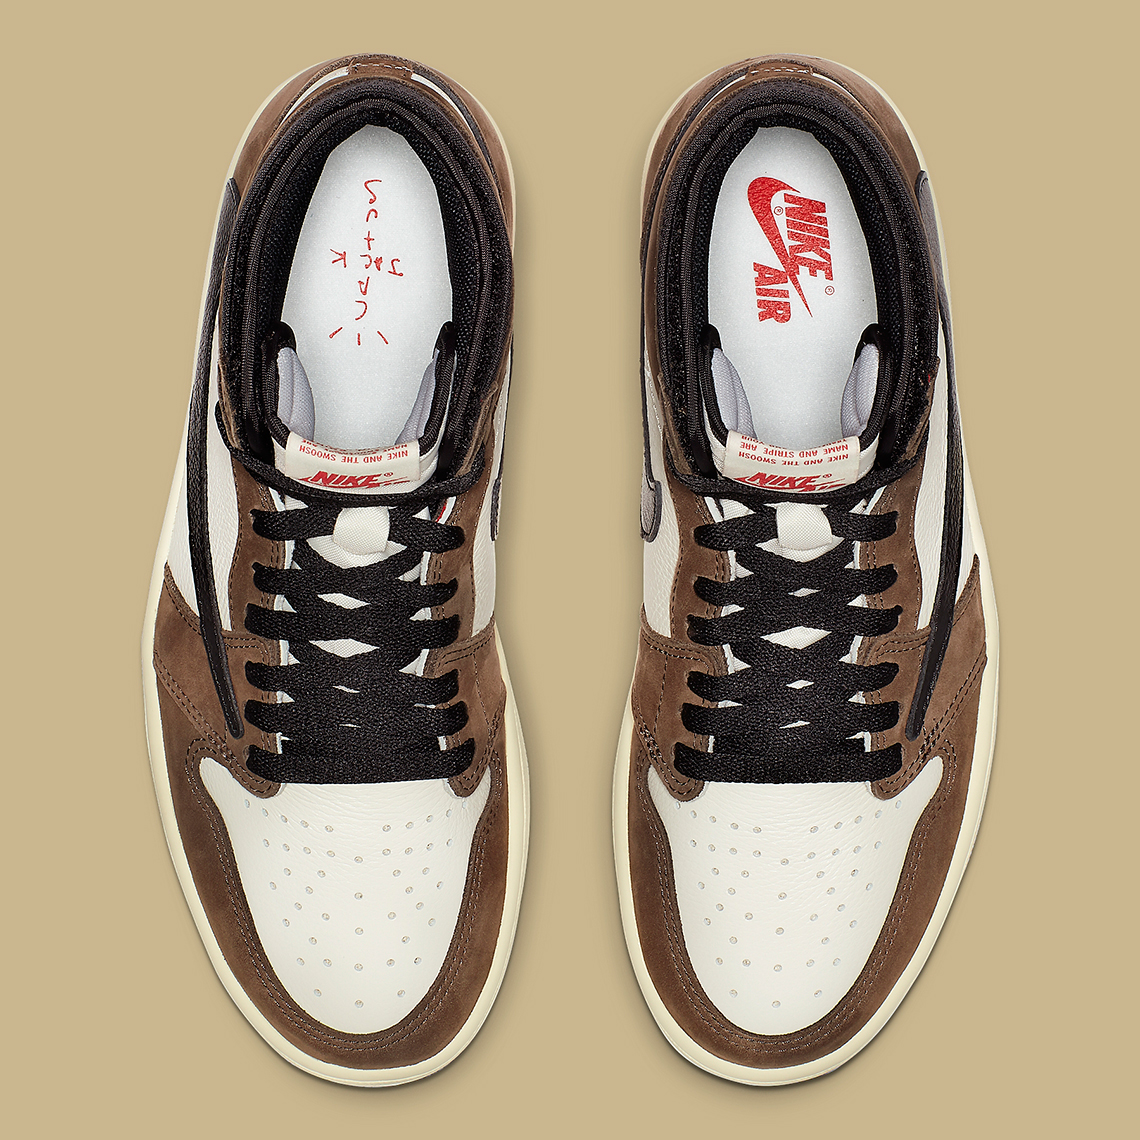 super popular 2ca6a 0434e Travis Scott Jordan 1 Official Release Info And Photos   SneakerNews.com